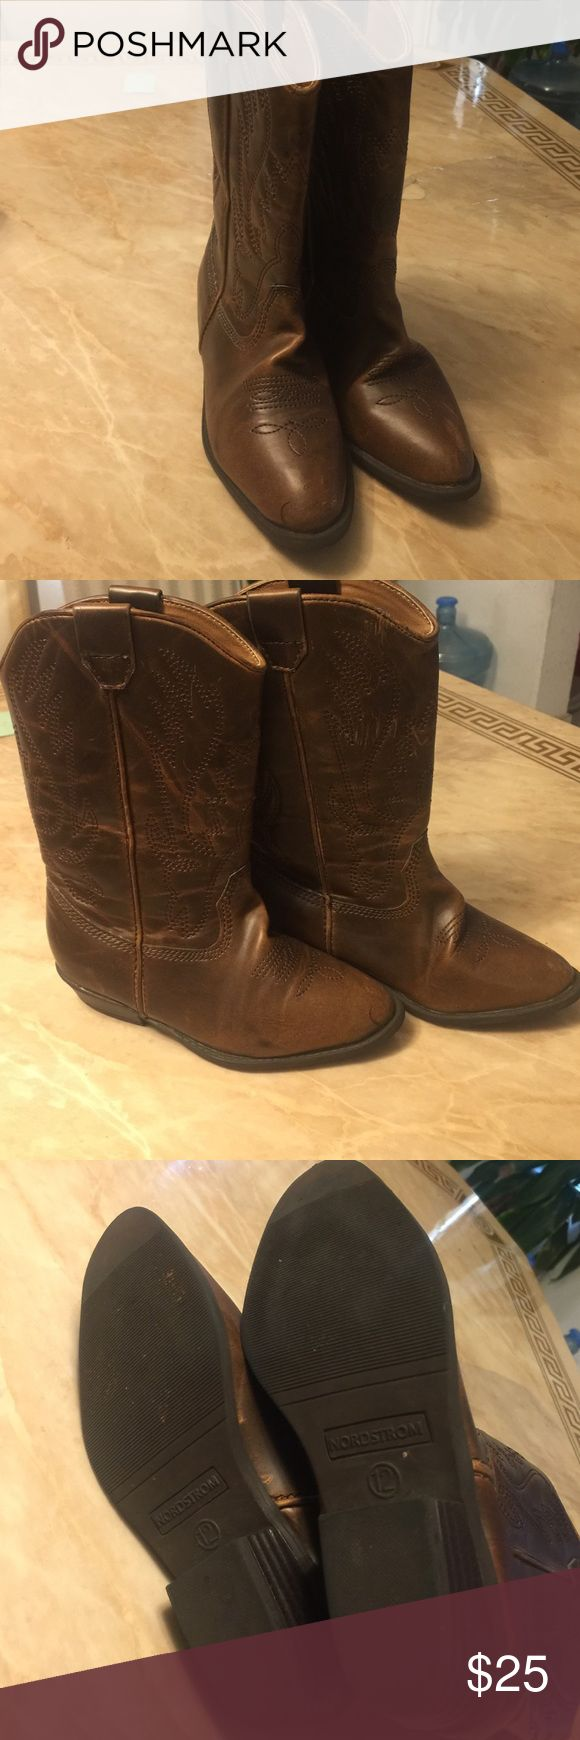 NORDSTROM BOOTS Size 12 Pre loved gently used only 3 times Nordstrom Shoes Boots